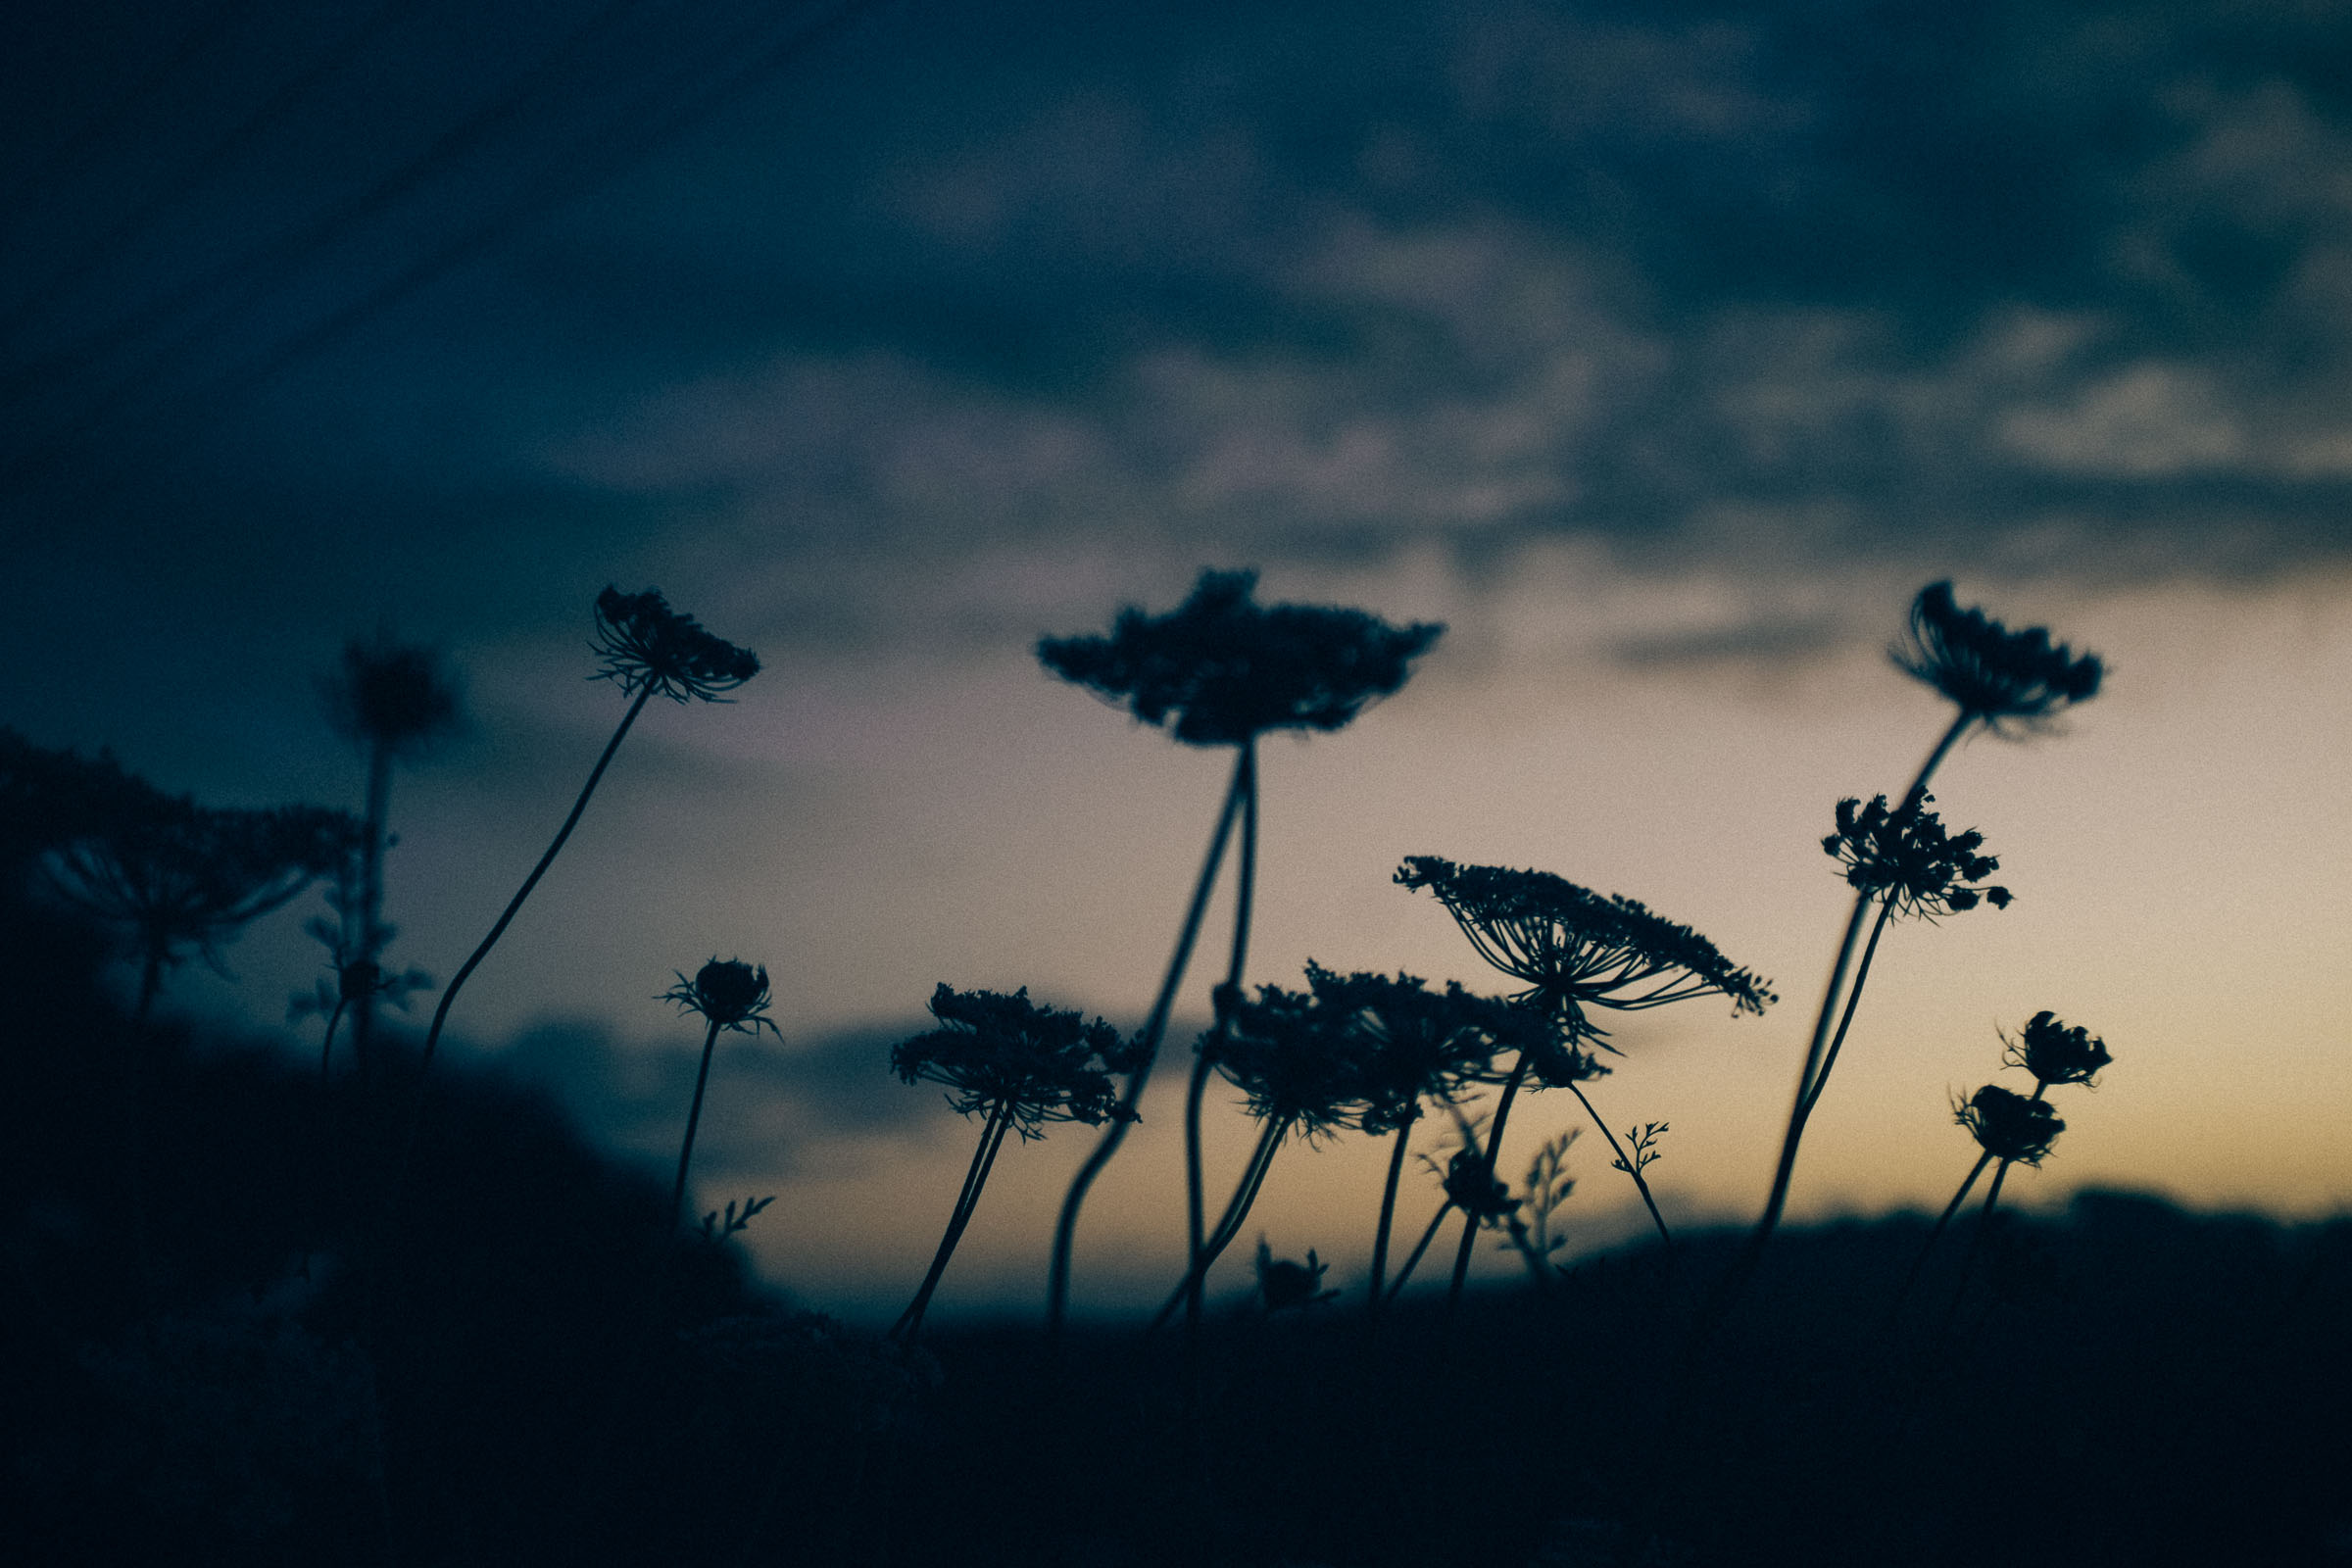 morning light - queen anne's lace silhouettes. copyright leonie wise